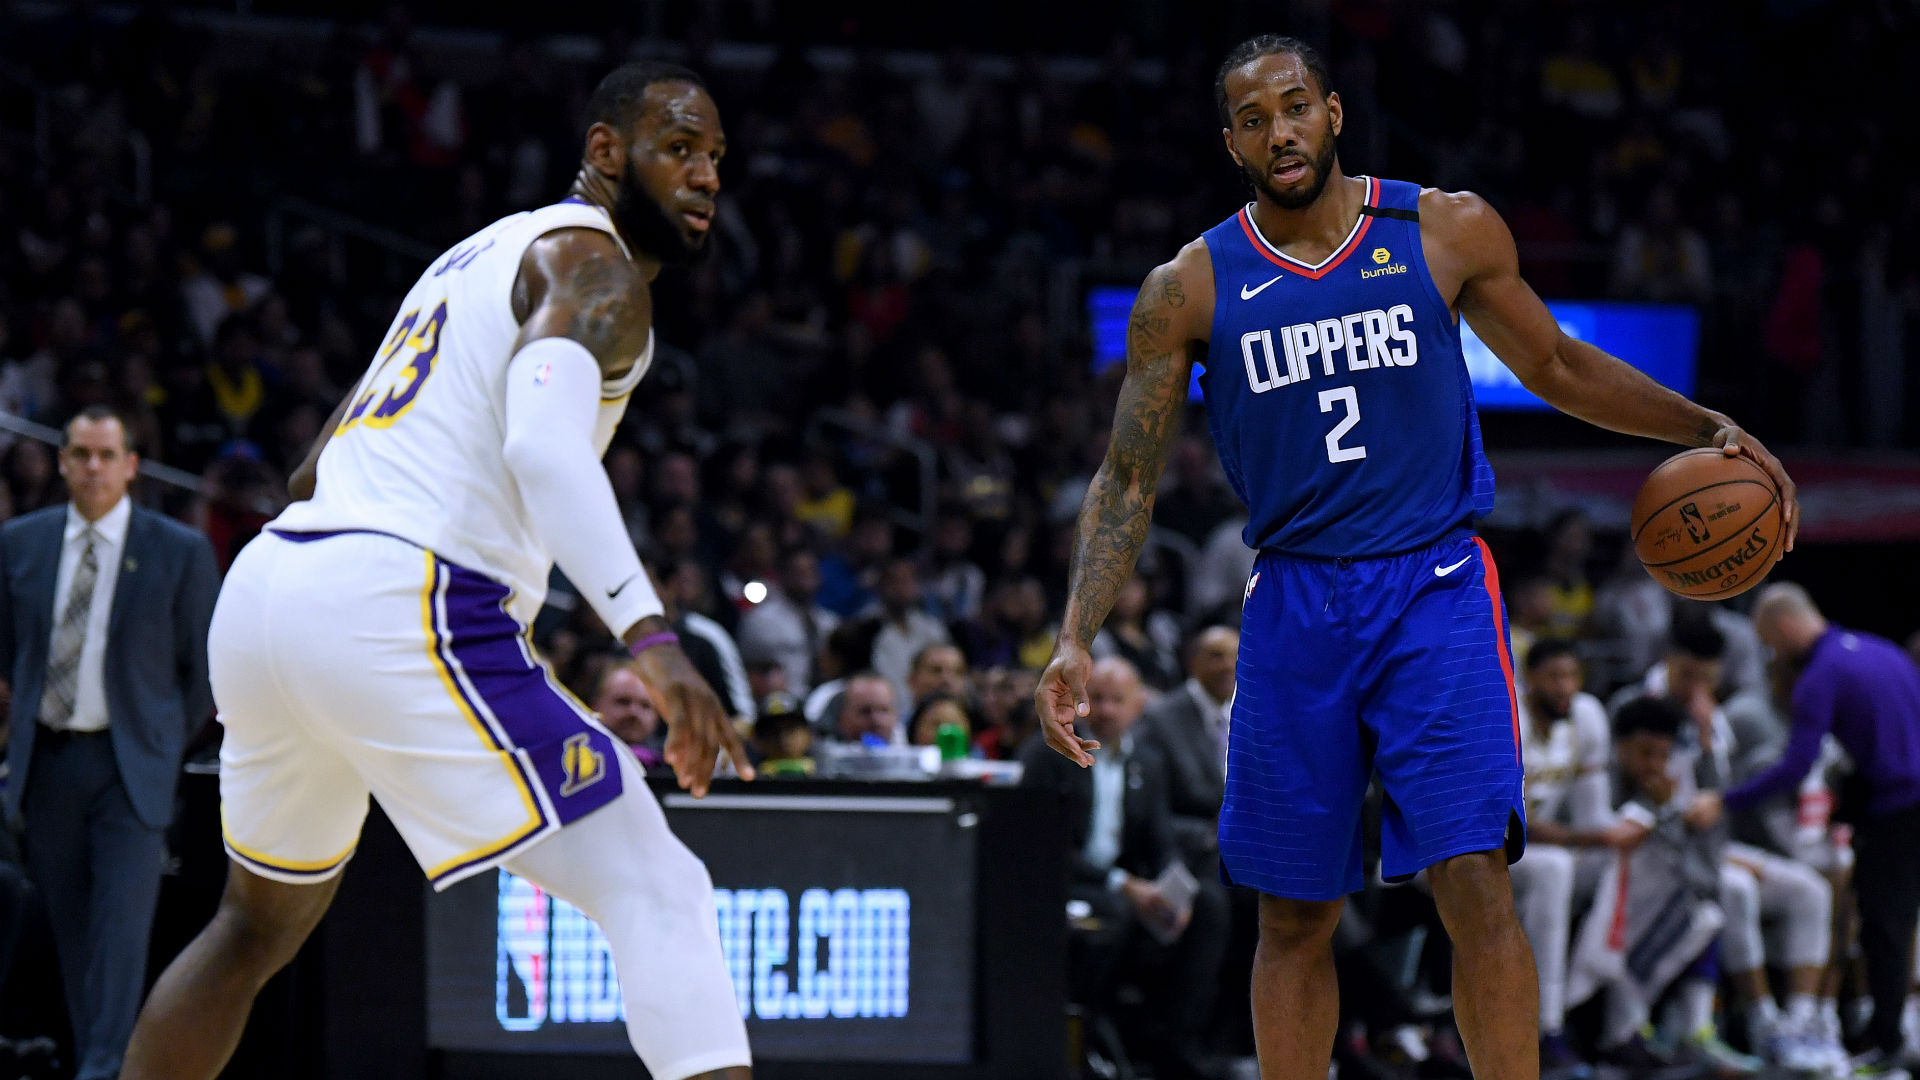 NBA schedule release: Here are the Opening Night, Christmas Day games for 2020-21 season